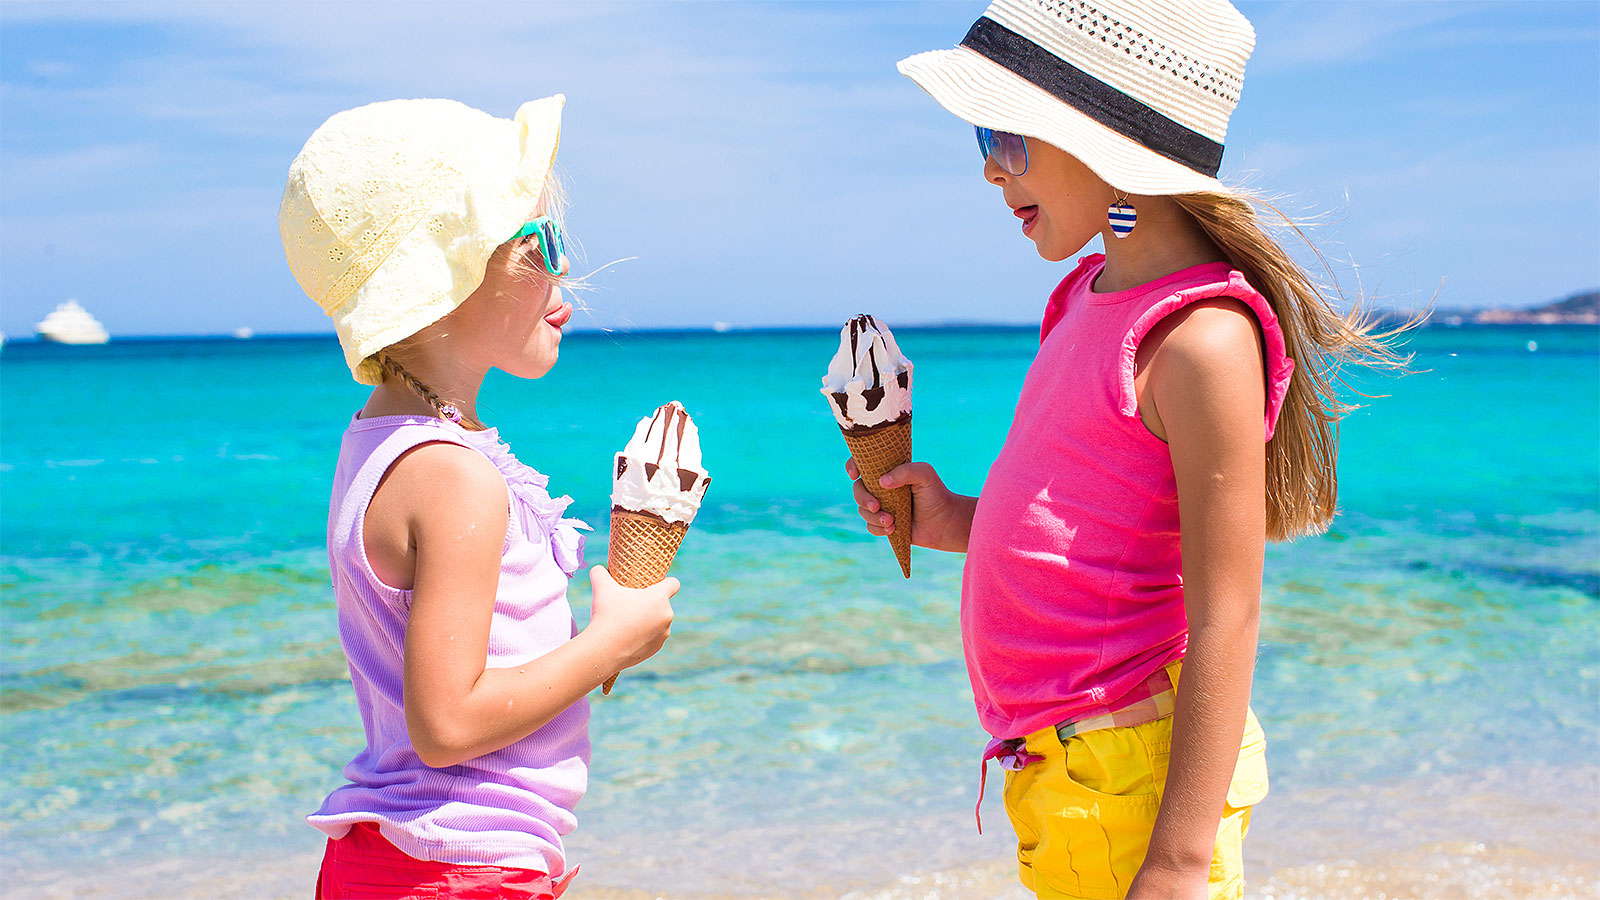 Study finds children gain more weight during the summer months